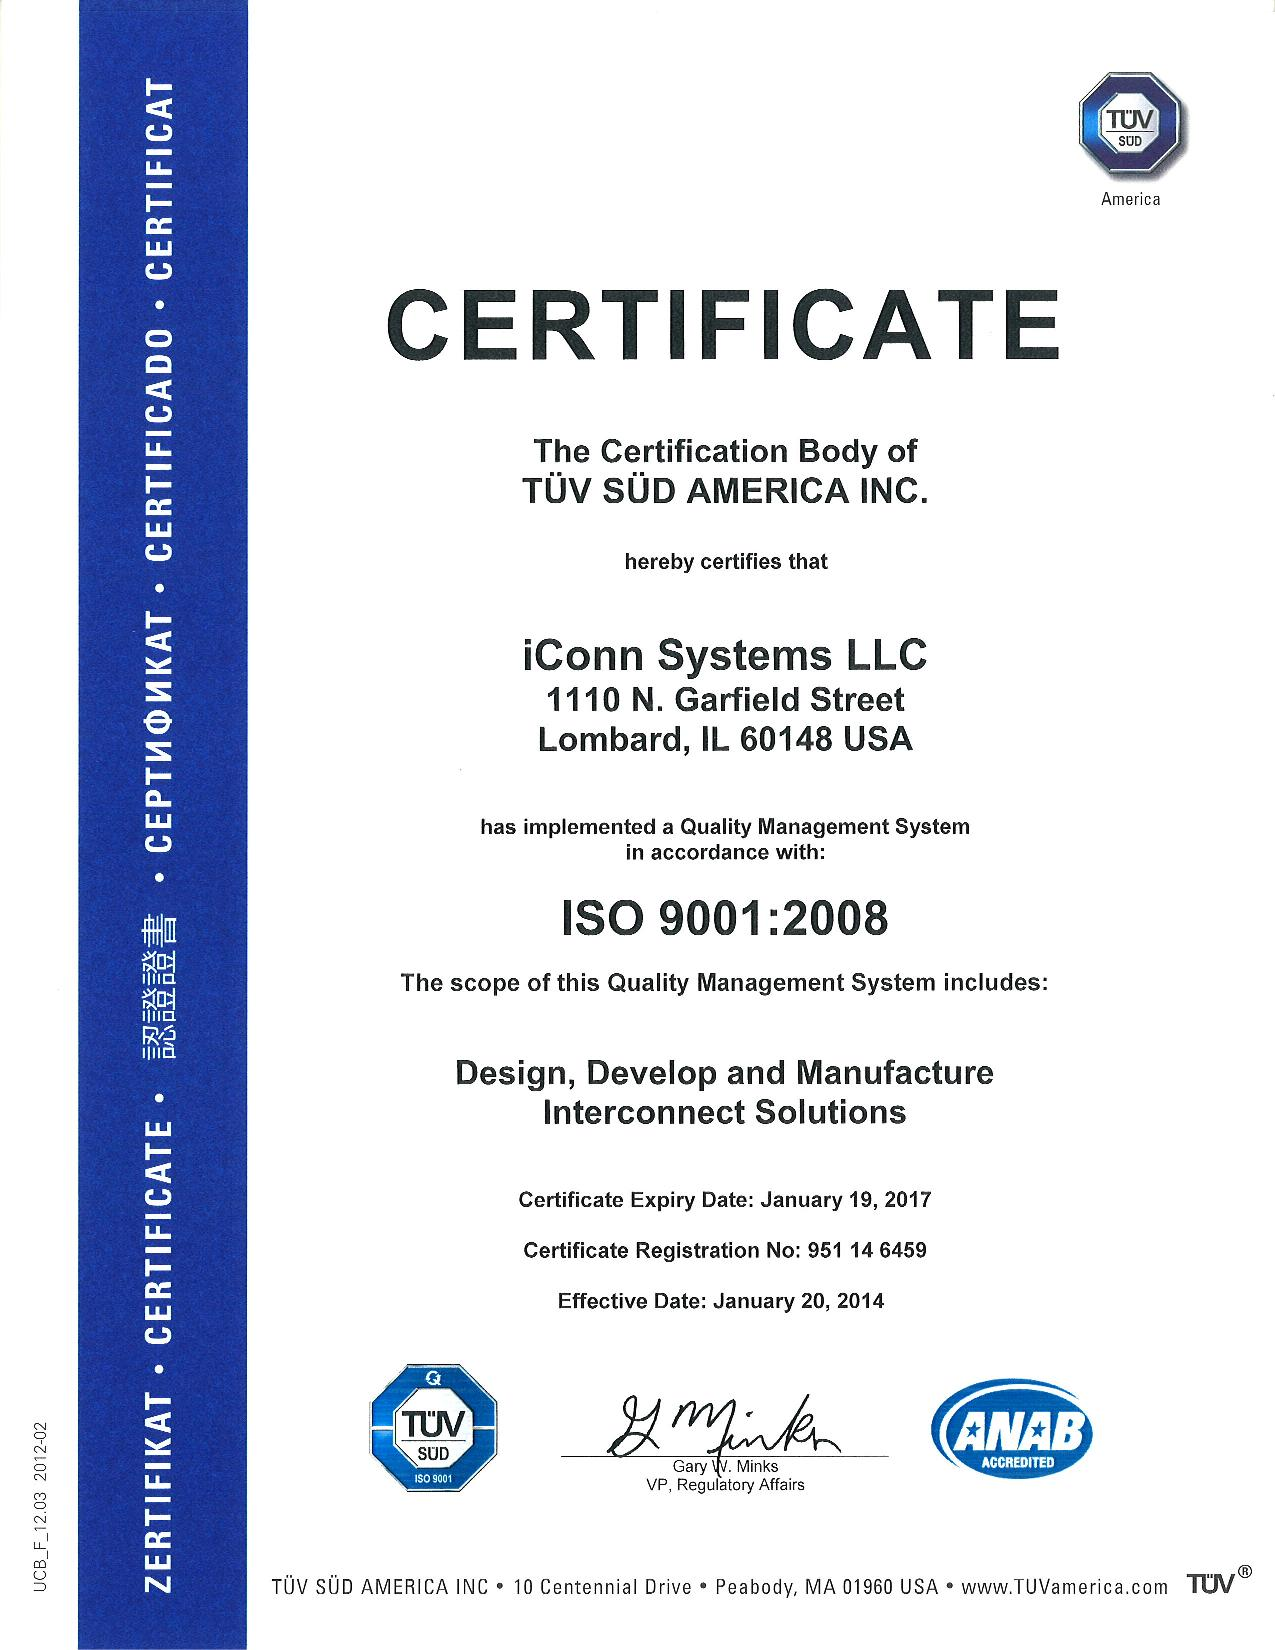 ISO 9001:2008 Certification for iCONN Systems